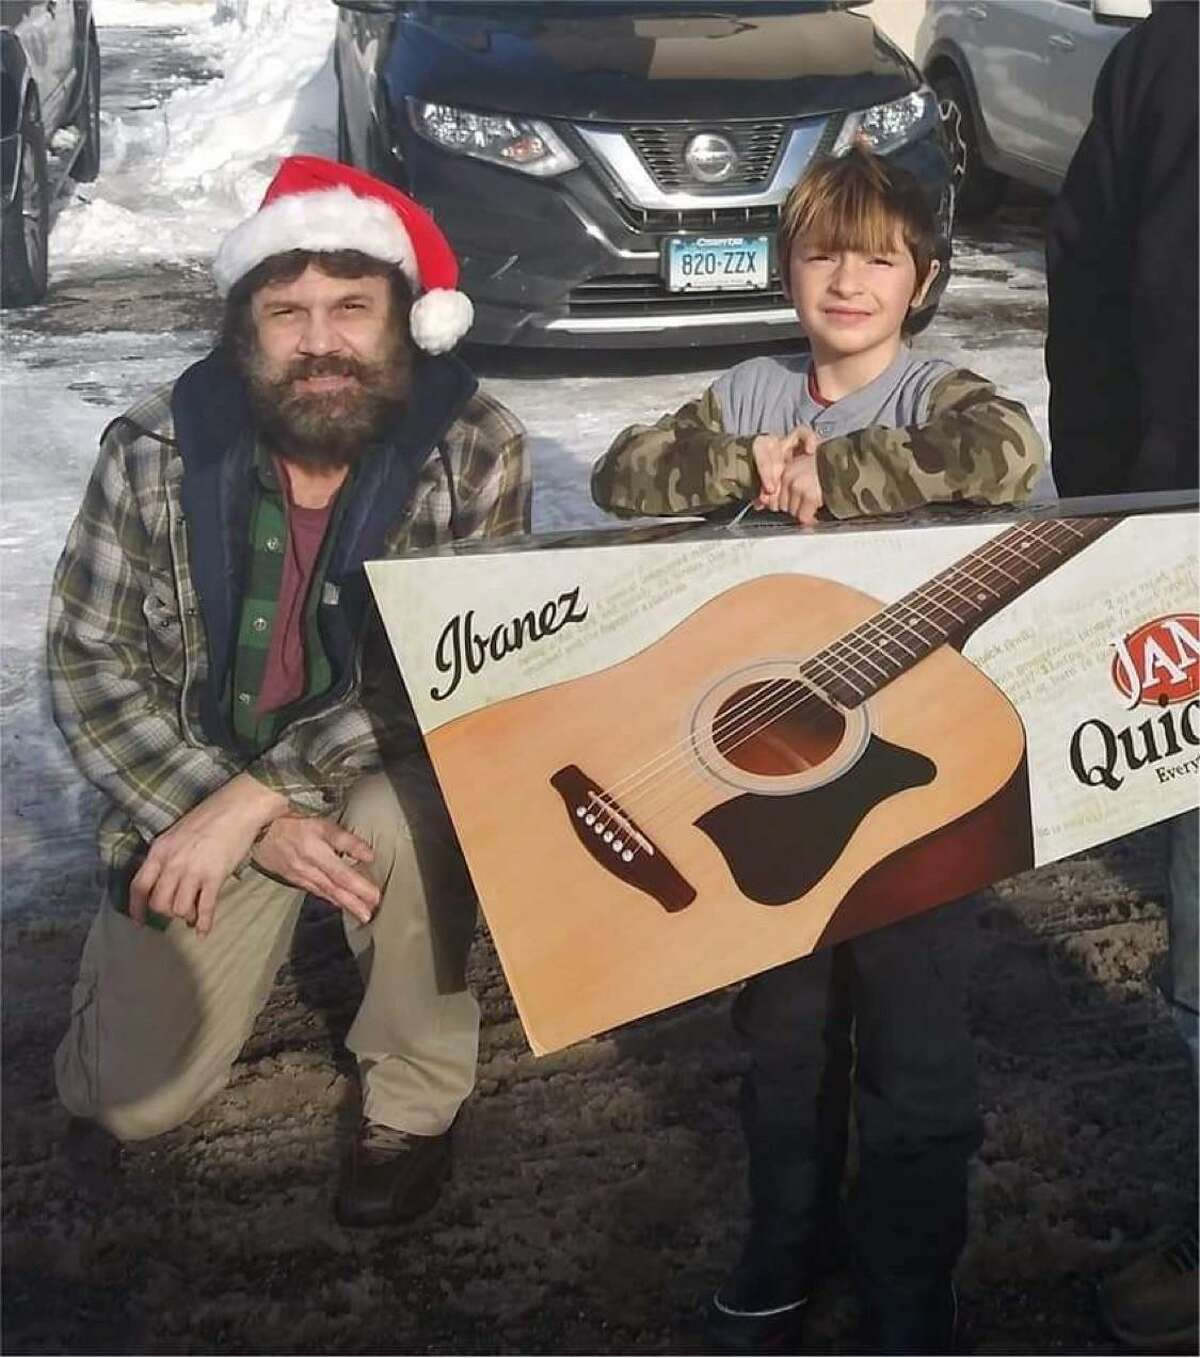 Vinny Rodriguez has been giving away guitars during the COVID-19 pandemic as a way to keep children busy and interested in music. He is pictured here with a child named Logan.